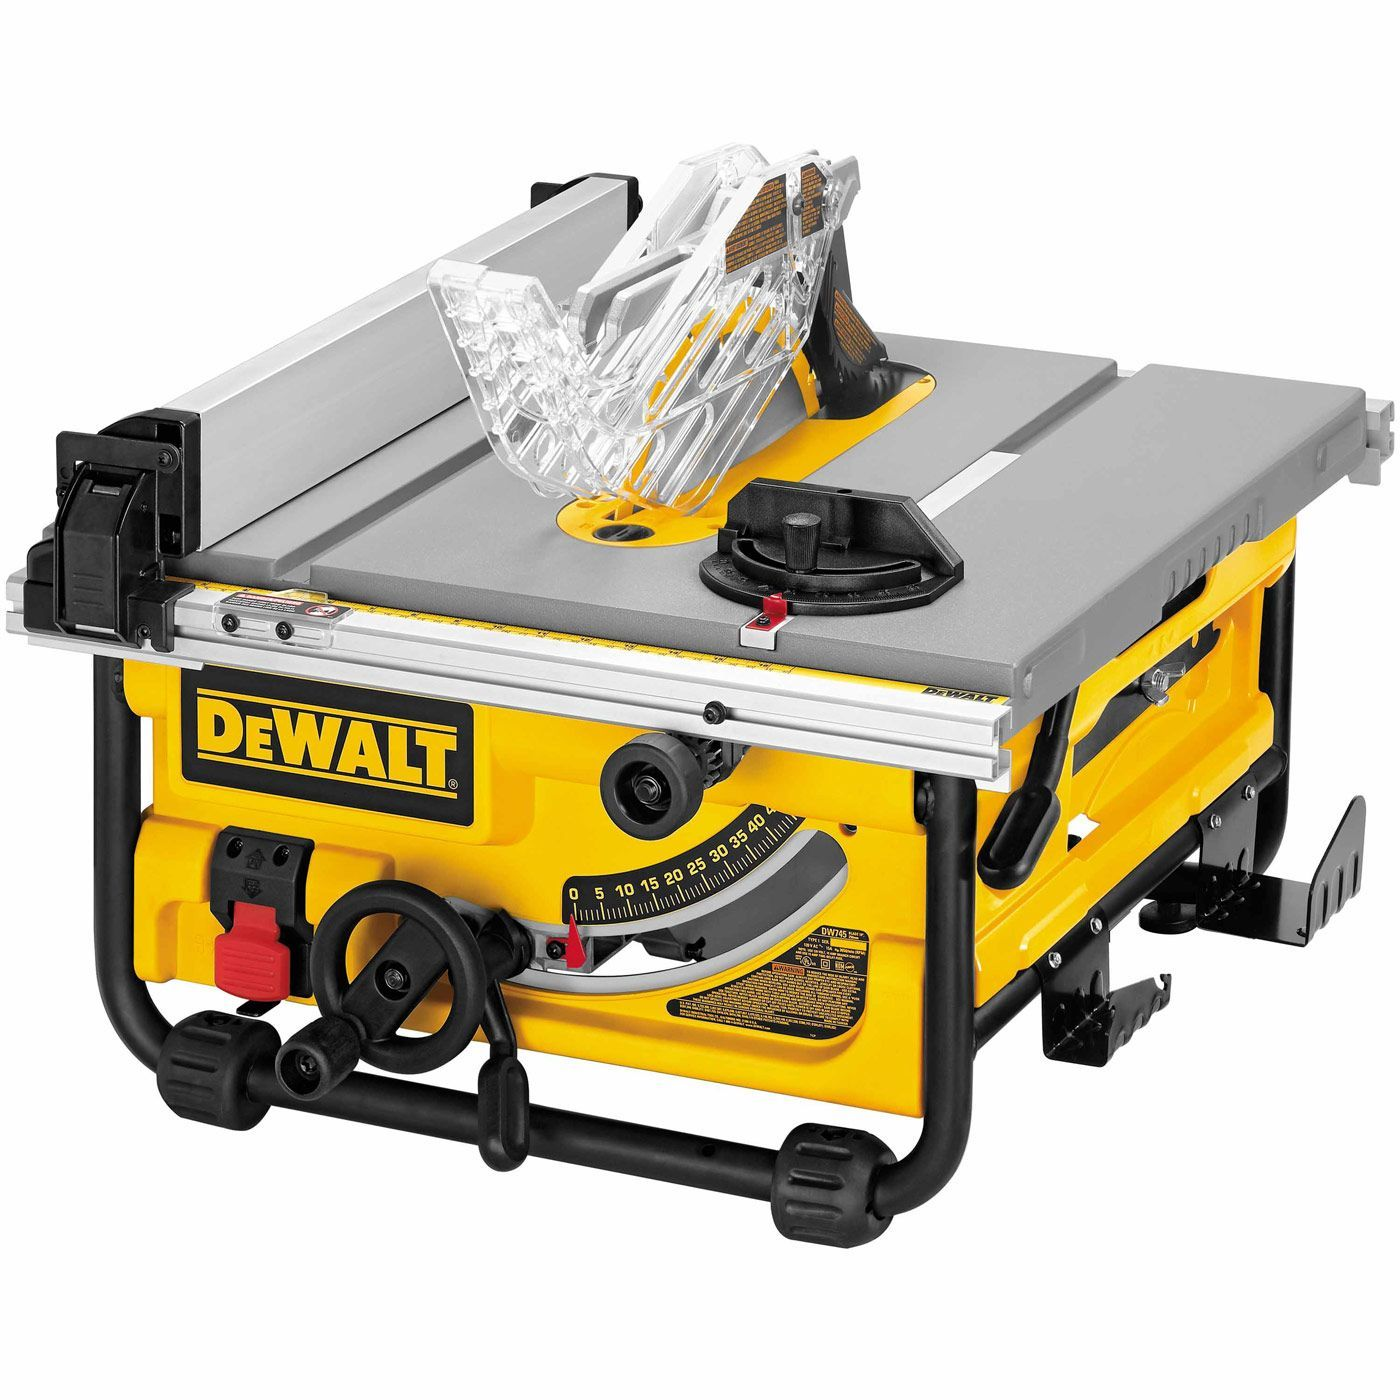 Dewalt Dw745 10 Compact Job Site Table Saw Portable Table Saw Jobsite Table Saw Table Saw